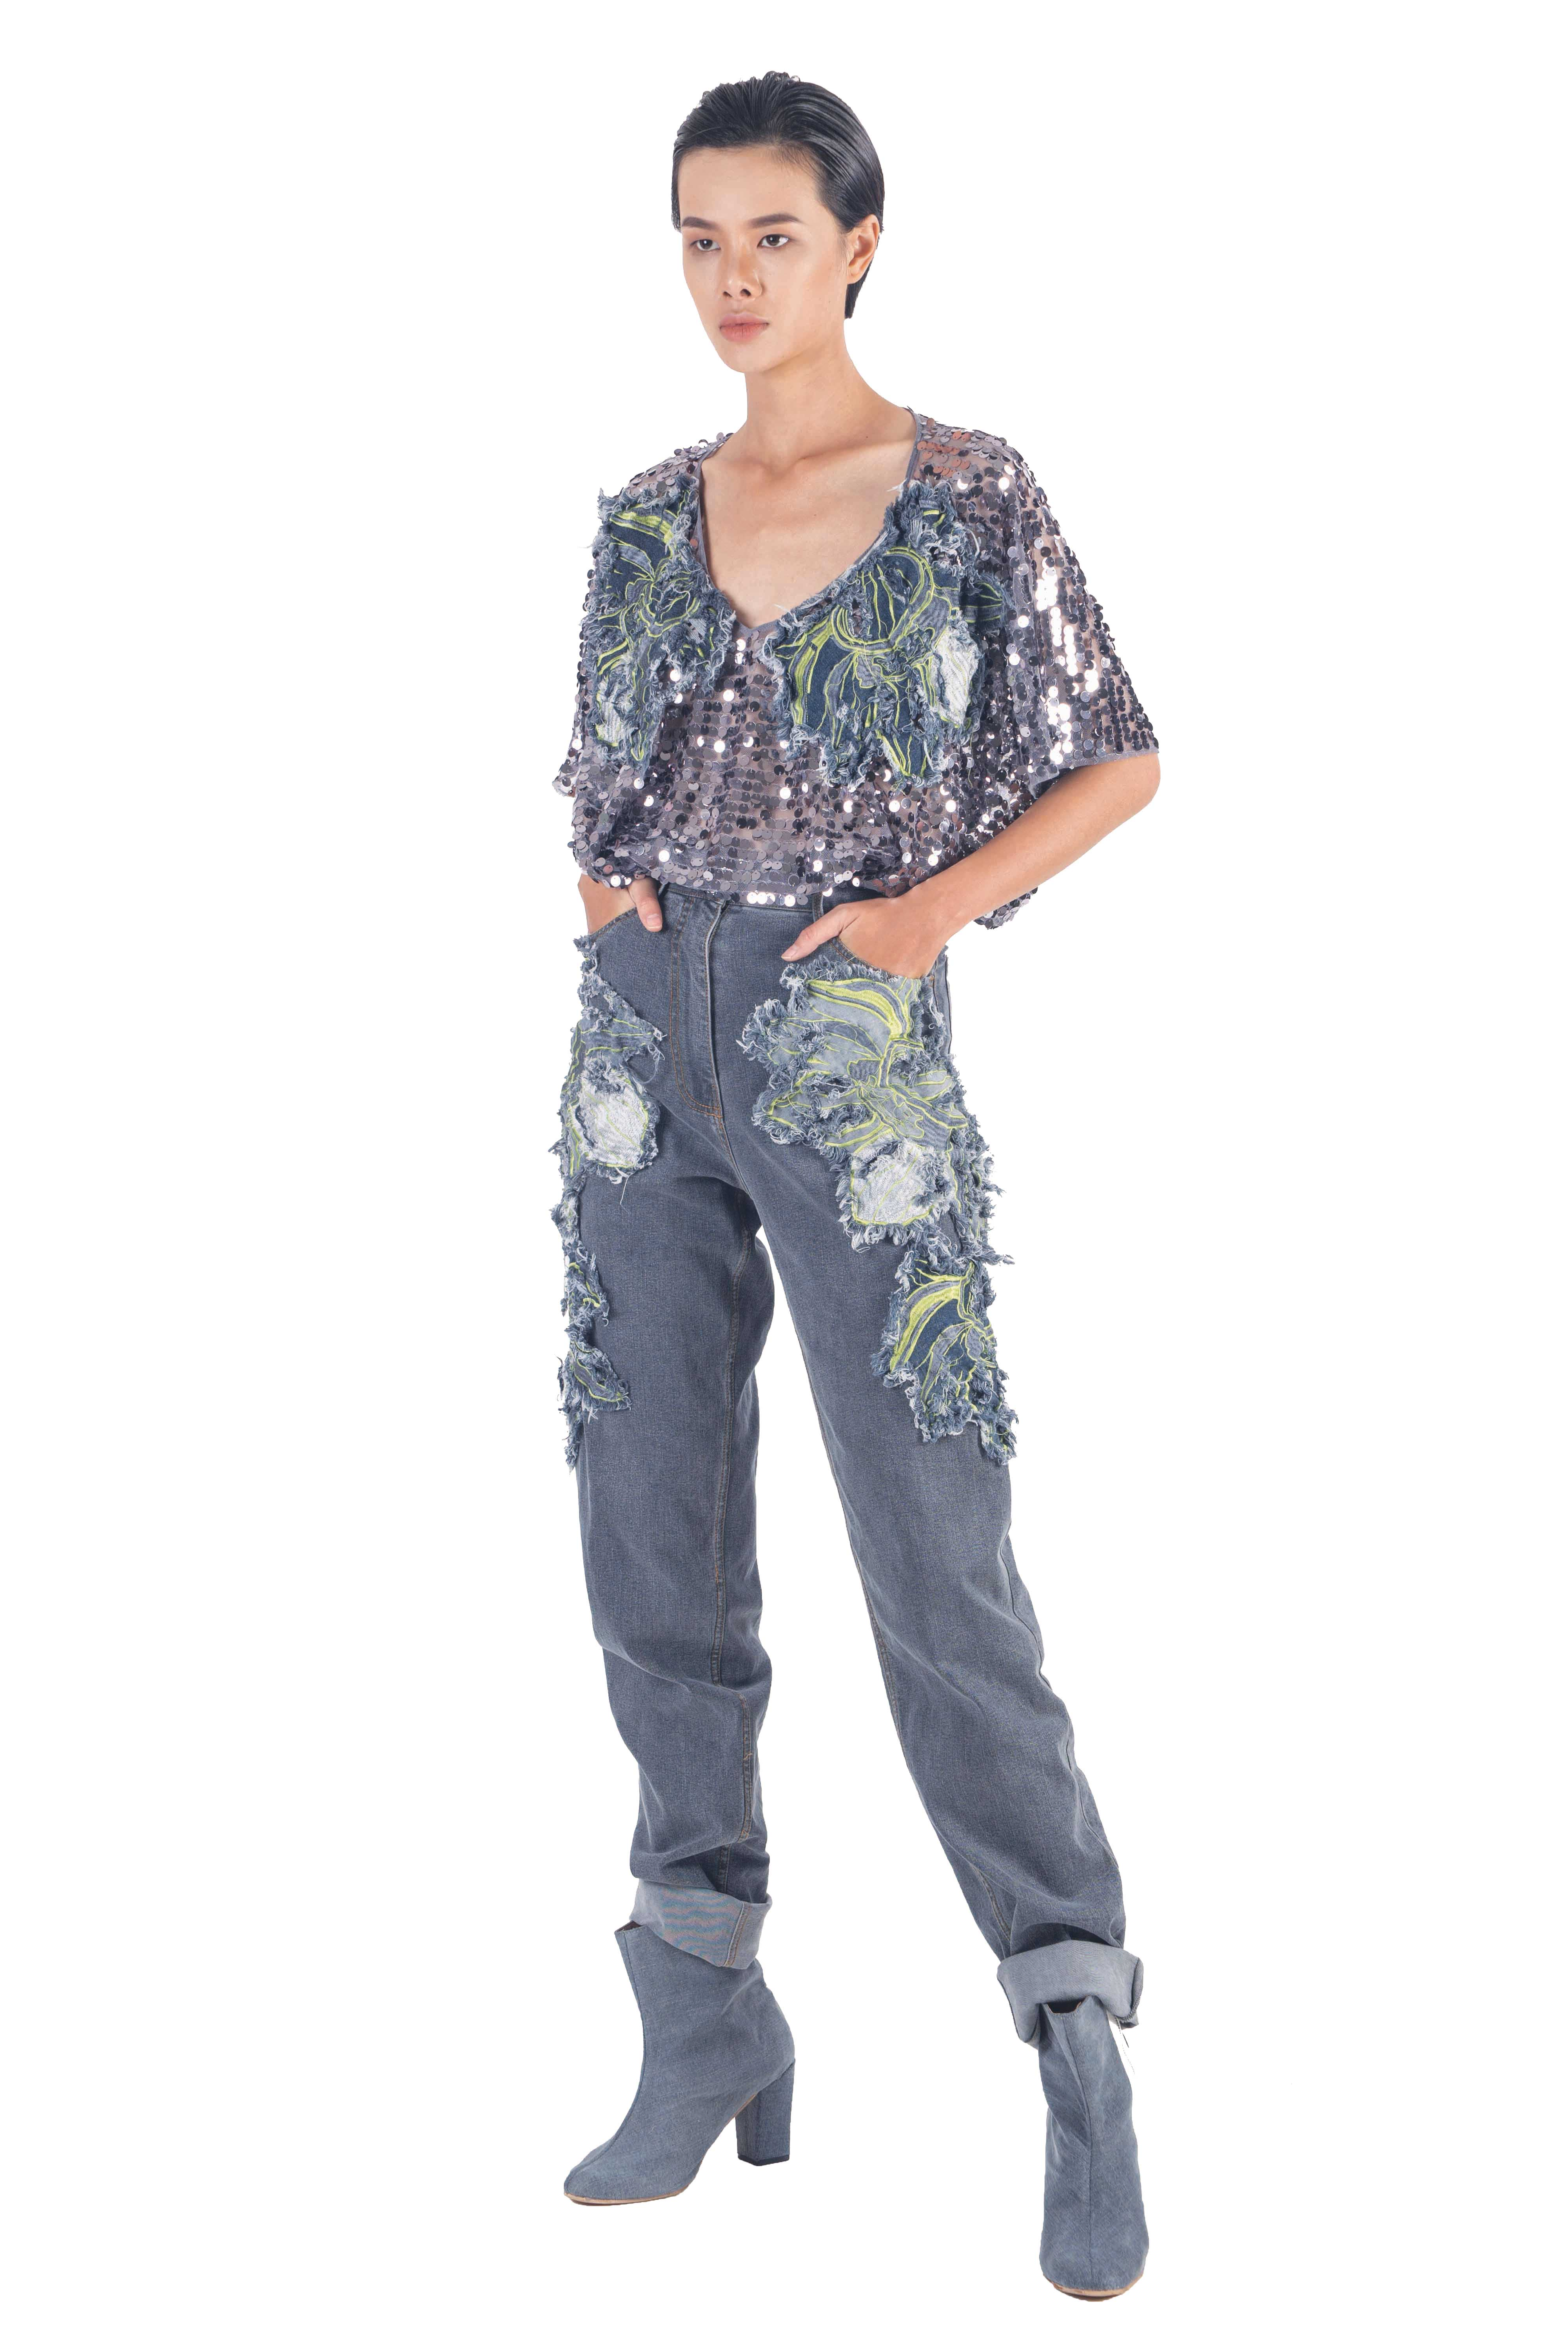 Washed greyish blue denim pants with embroidery flowers on pockets